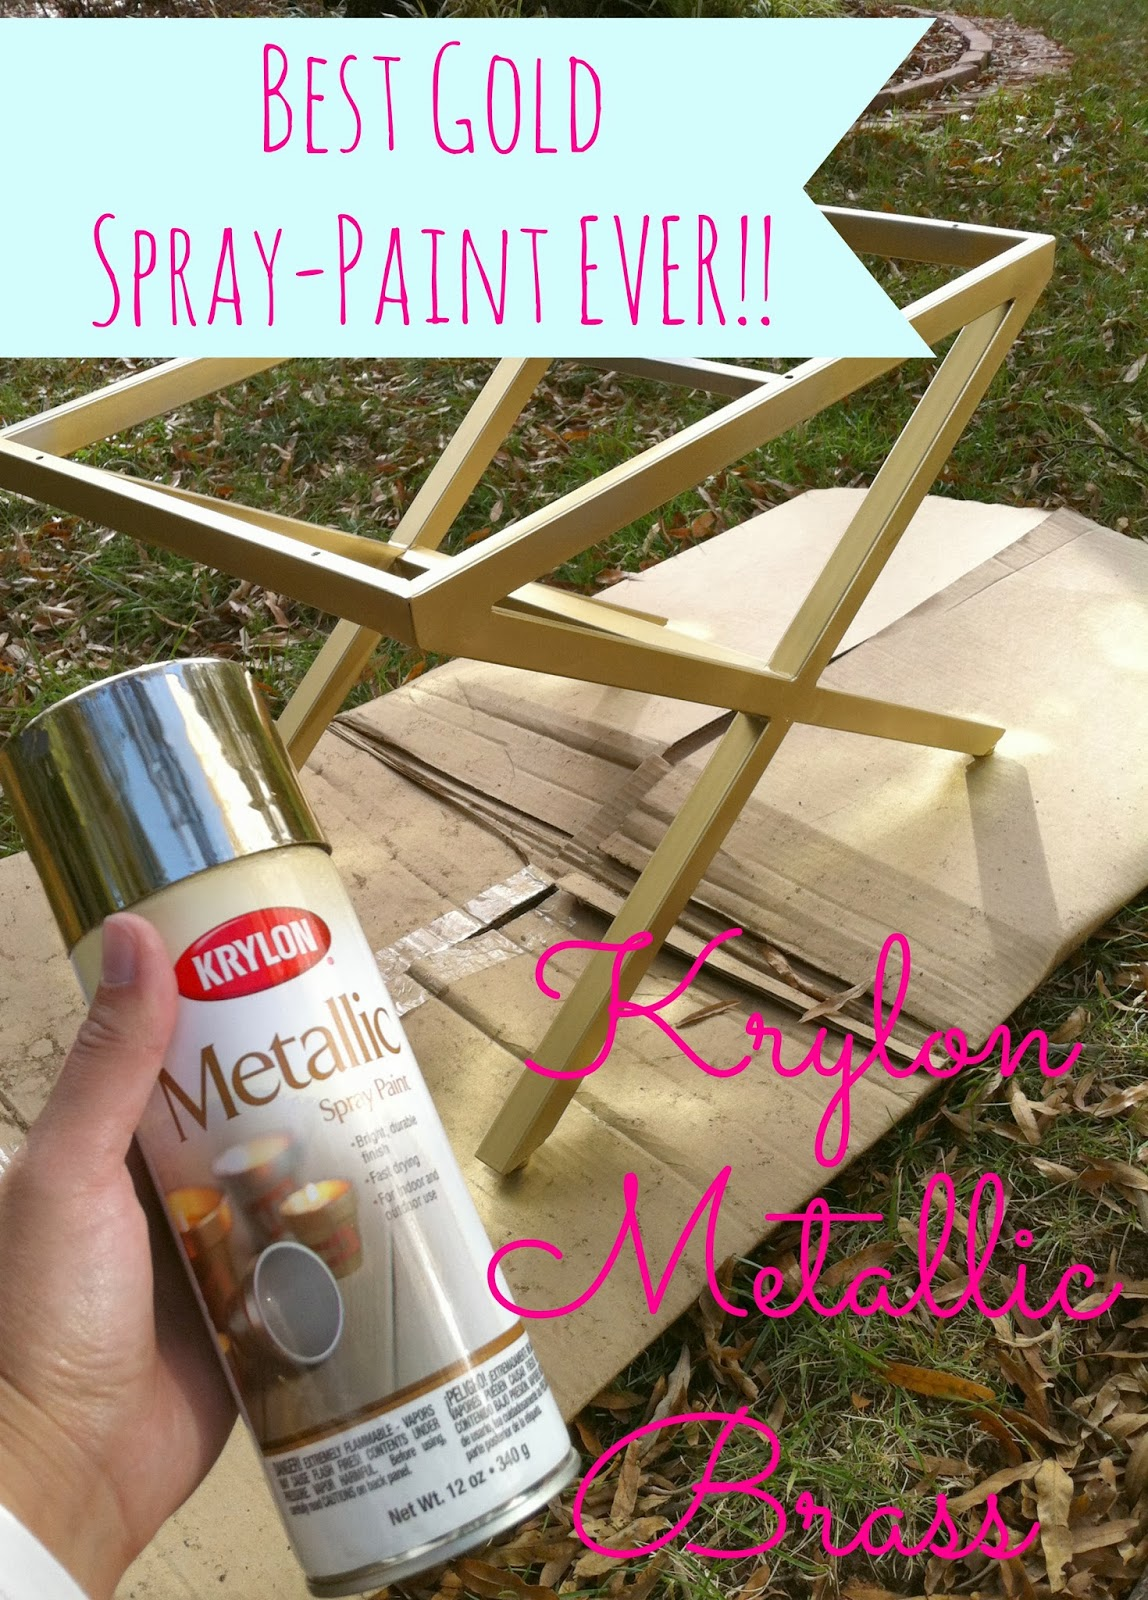 Spray Paint Ikea Furniture Before Or After Assembly